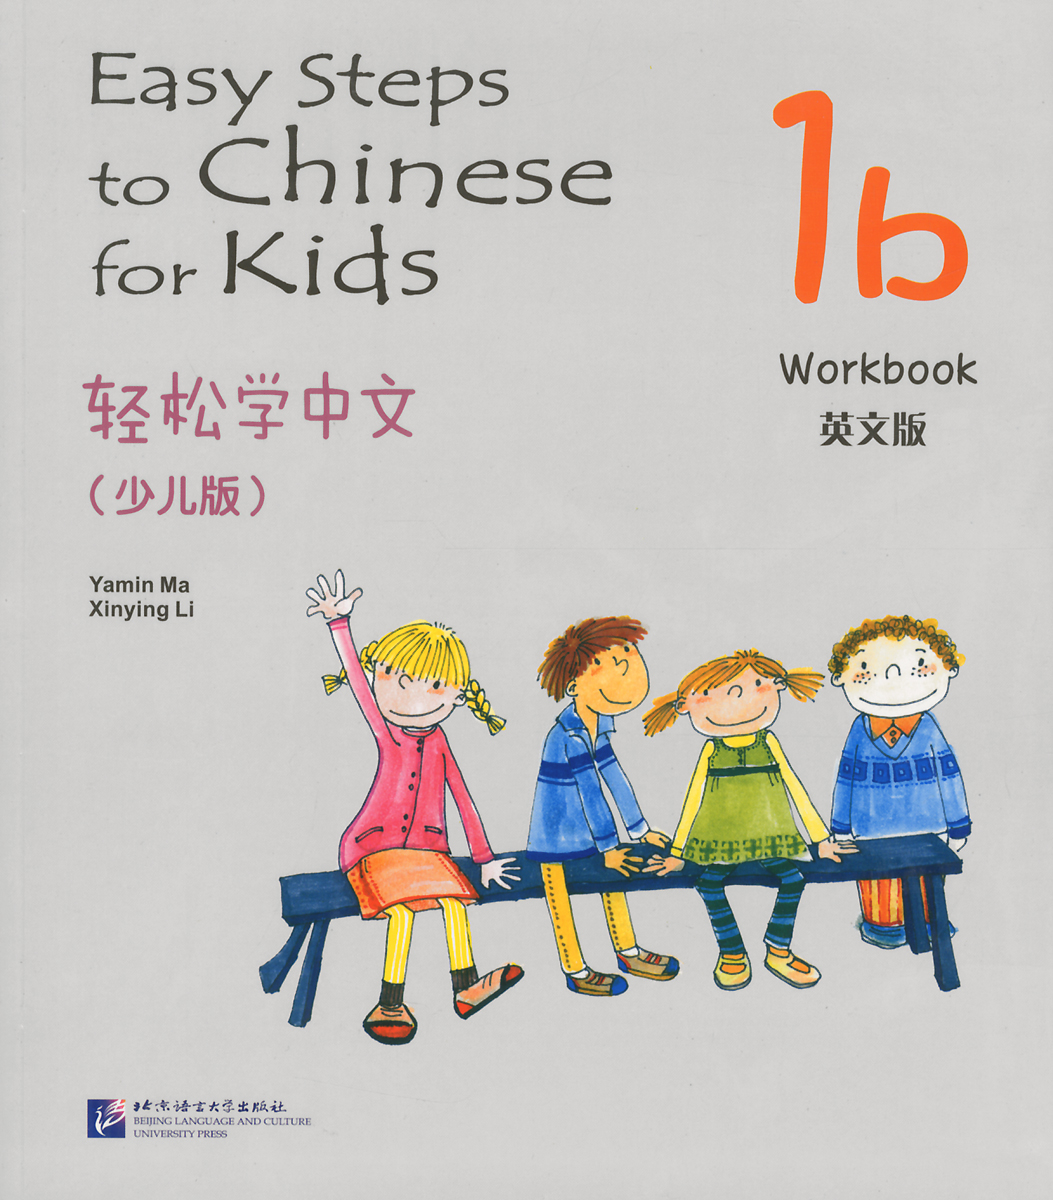 Easy Steps to Chinese for Kids 1B: Workbook on a chinese screen